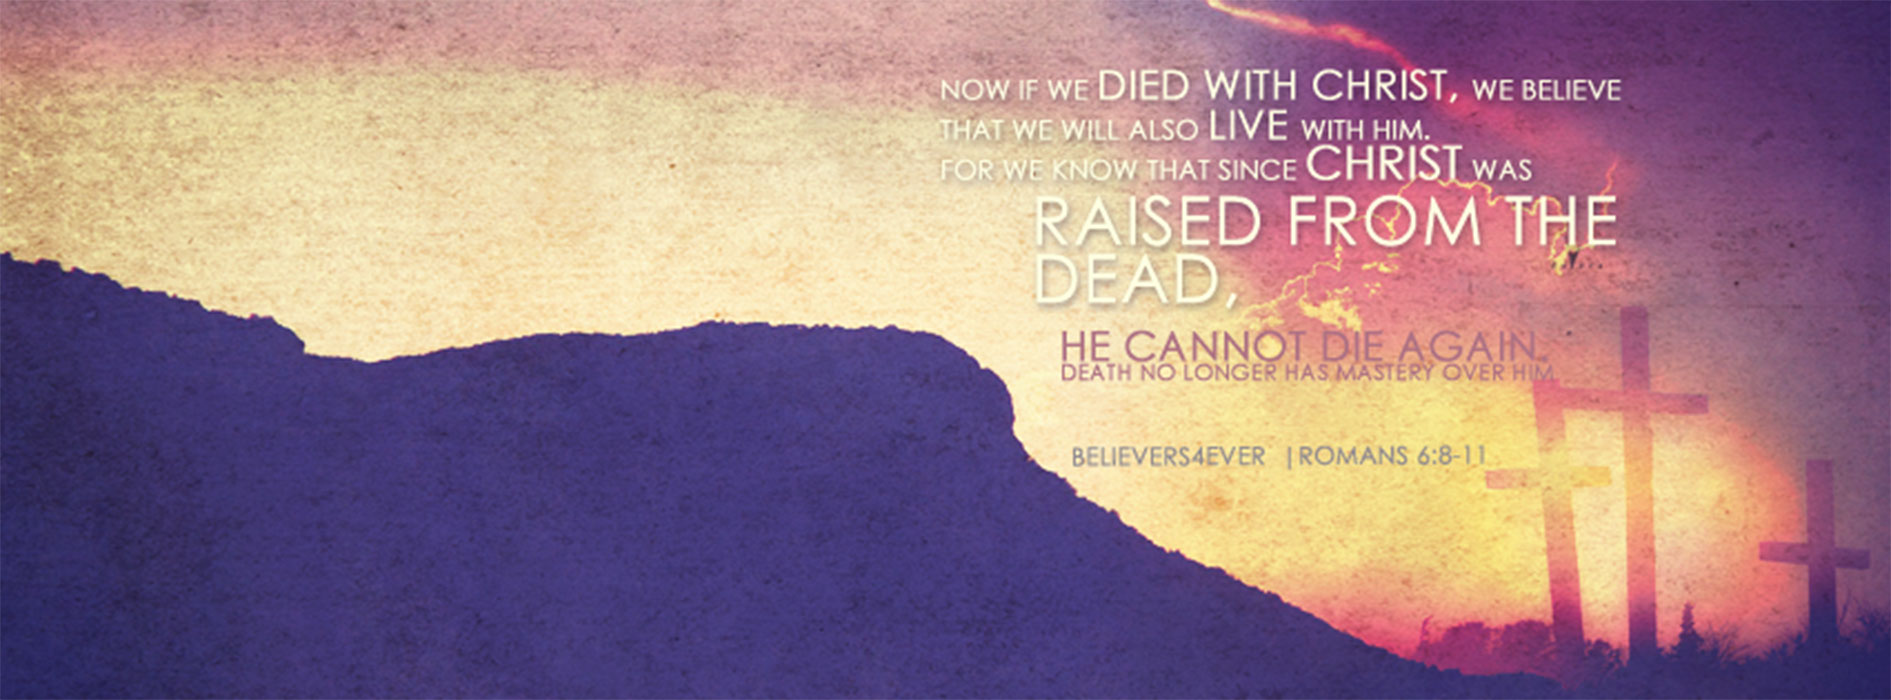 Christ-was-raised-from-the-dead